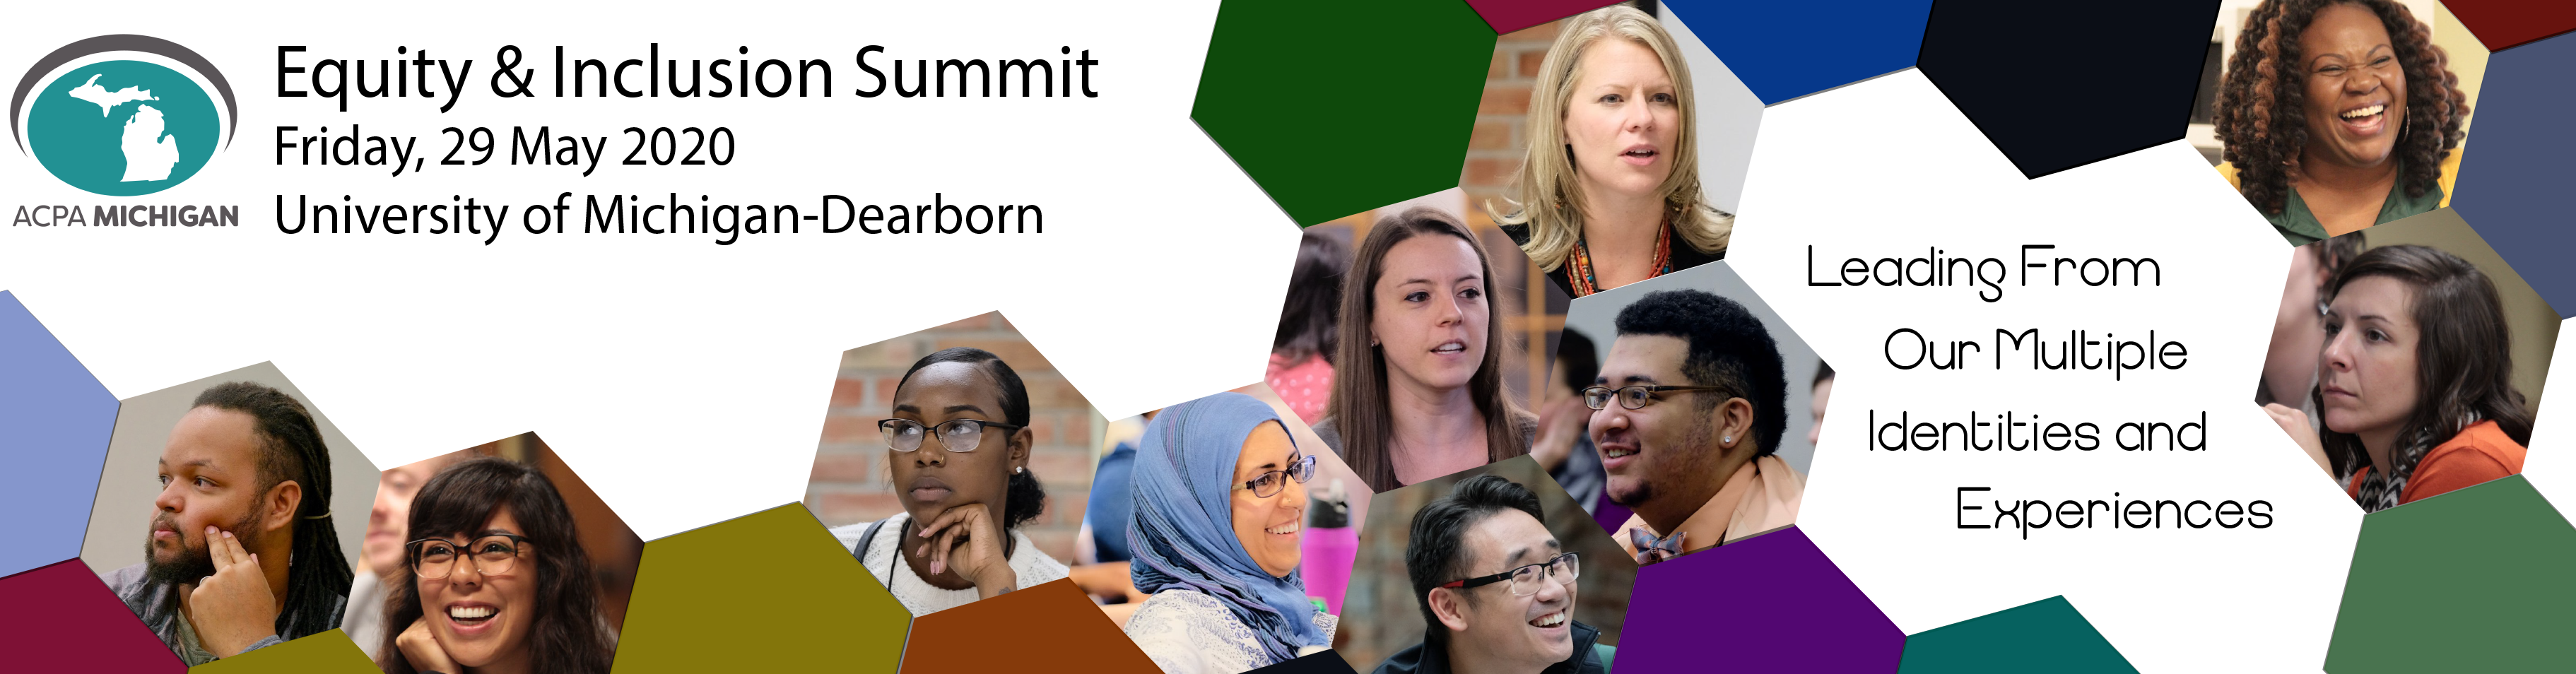 ACPA-Michigan Equity and Inclusion Summit, Friday 29 May 2020, University of Michigan-Dearborn